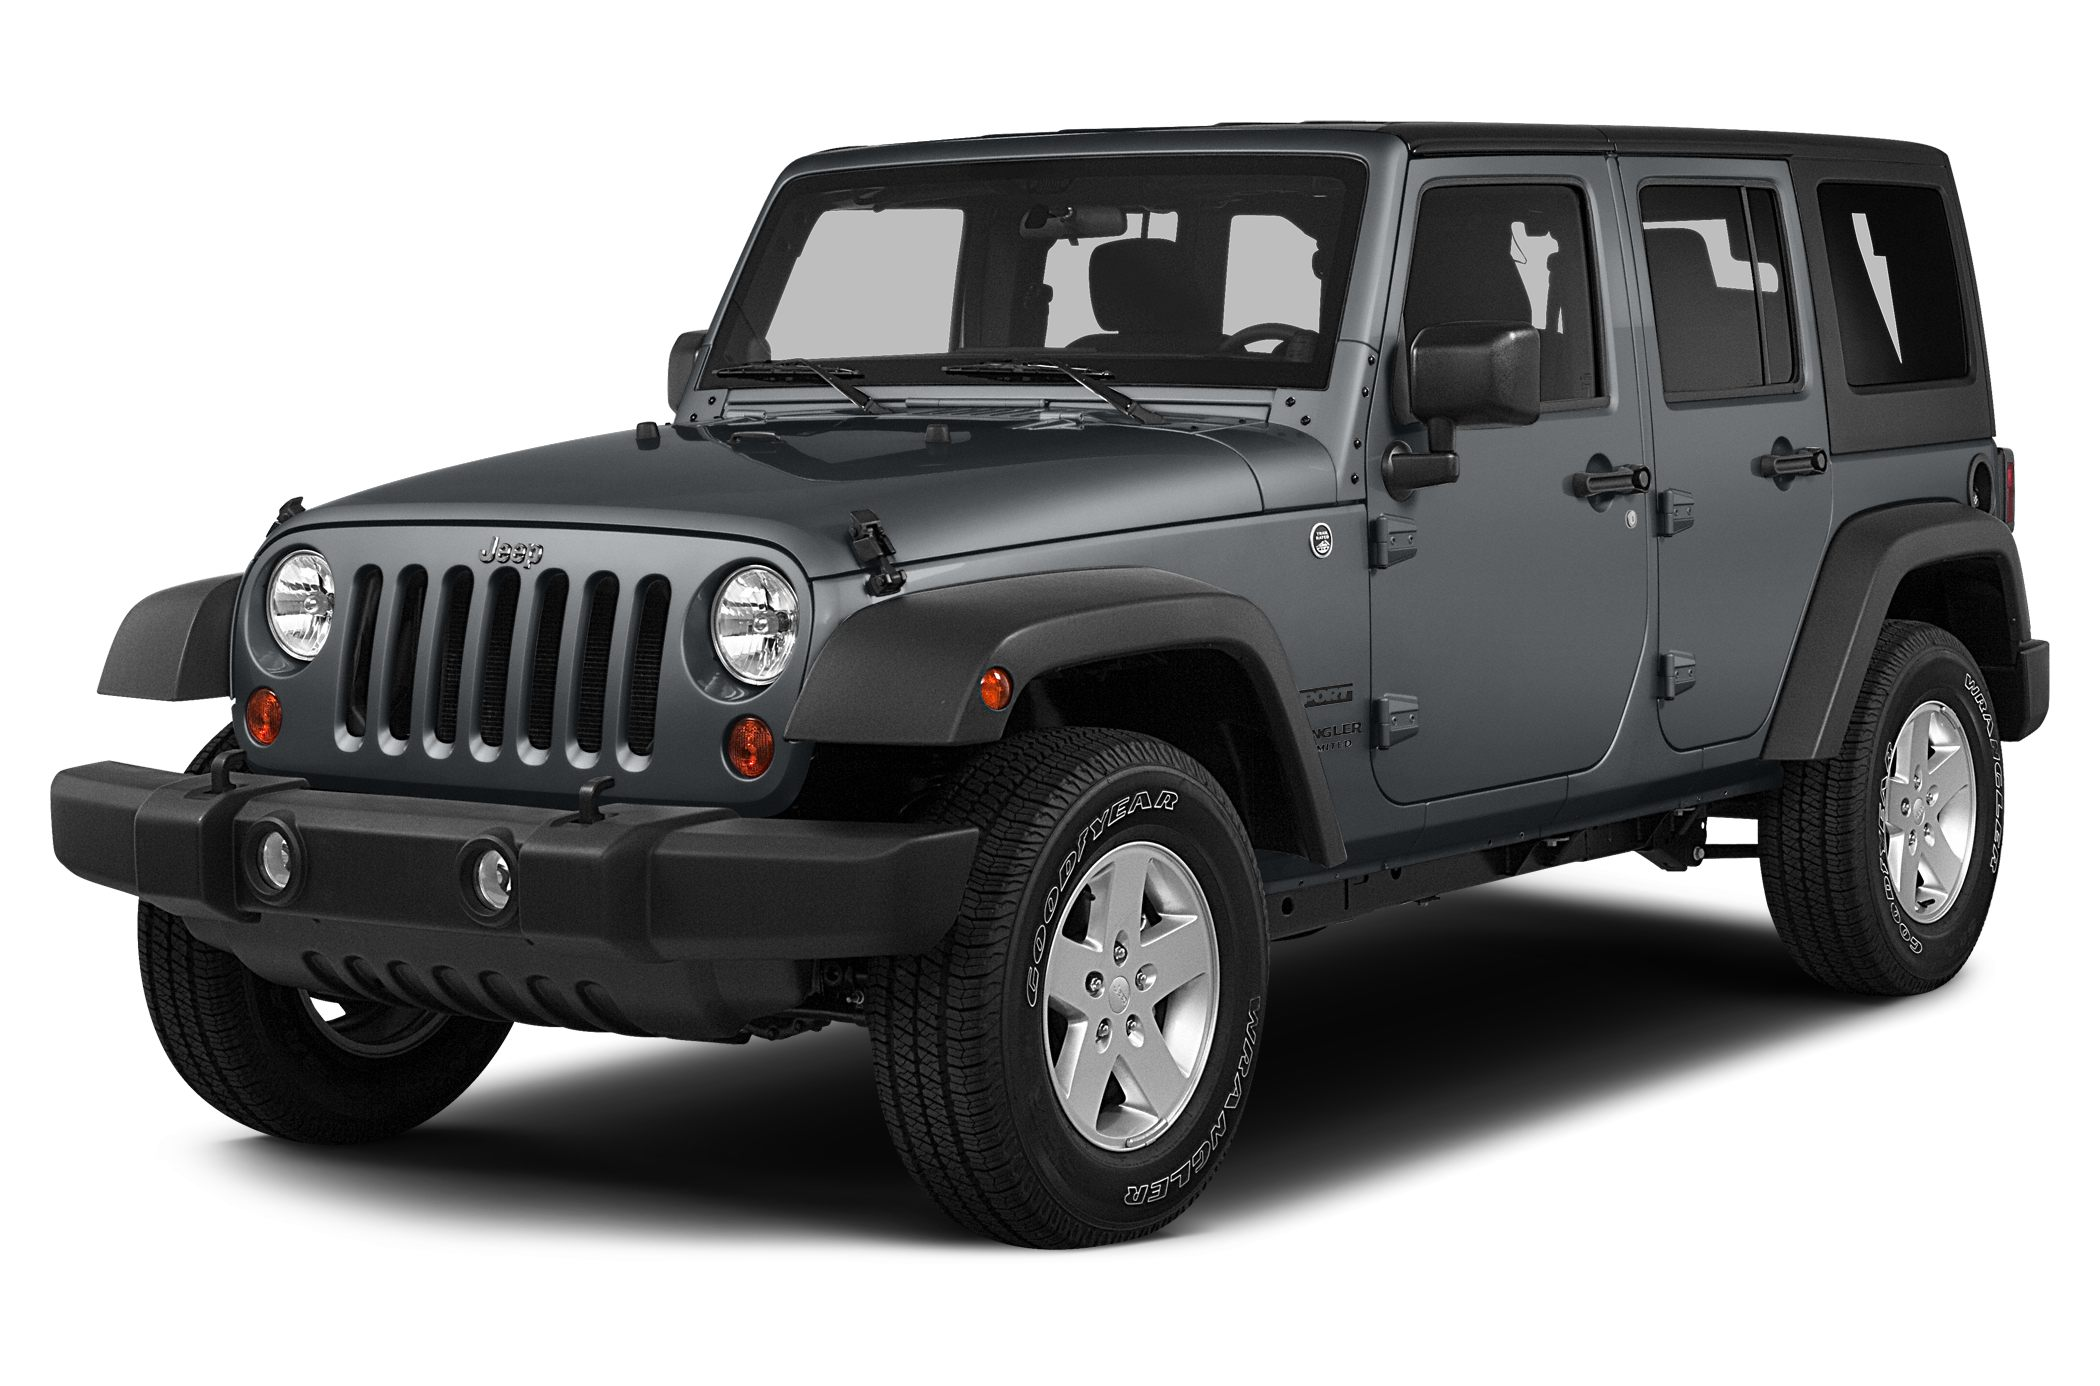 2015 Jeep Wrangler Unlimited Rubicon SUV for sale in Spokane for $40,696 with 0 miles